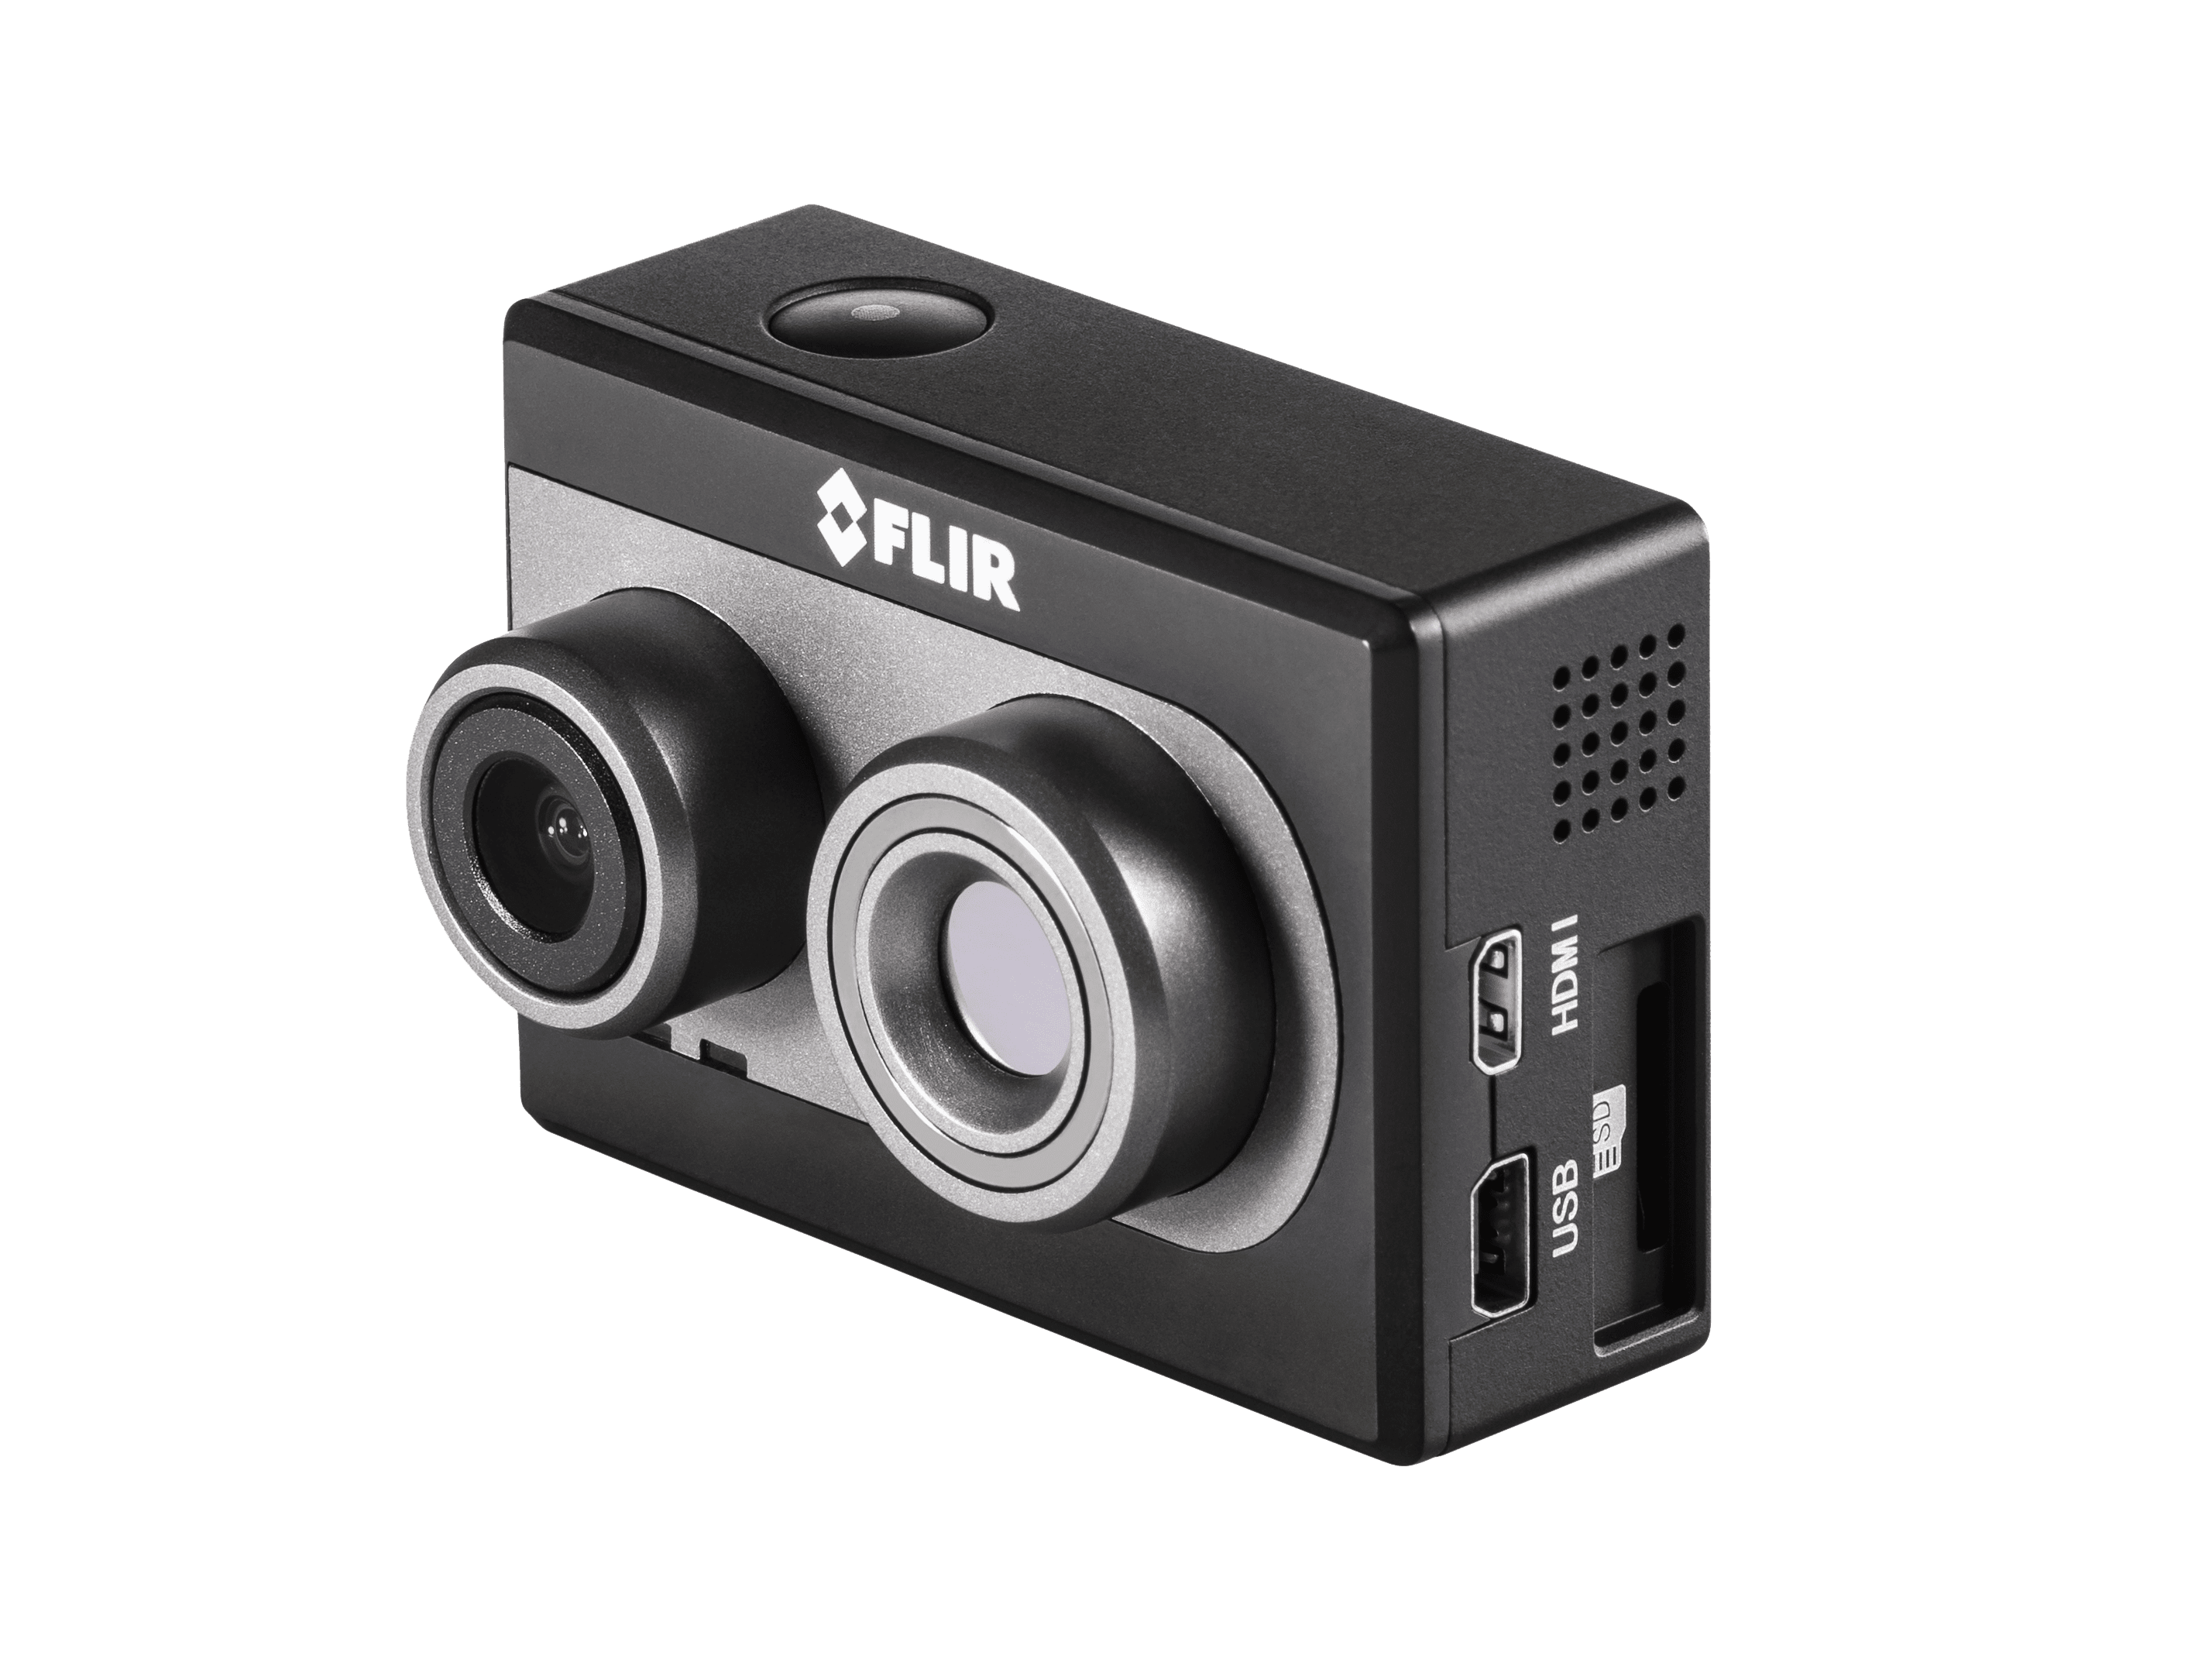 FLIR-Duo-right-side FLIR Rolls out New Thermal Imaging Cameras for UAS